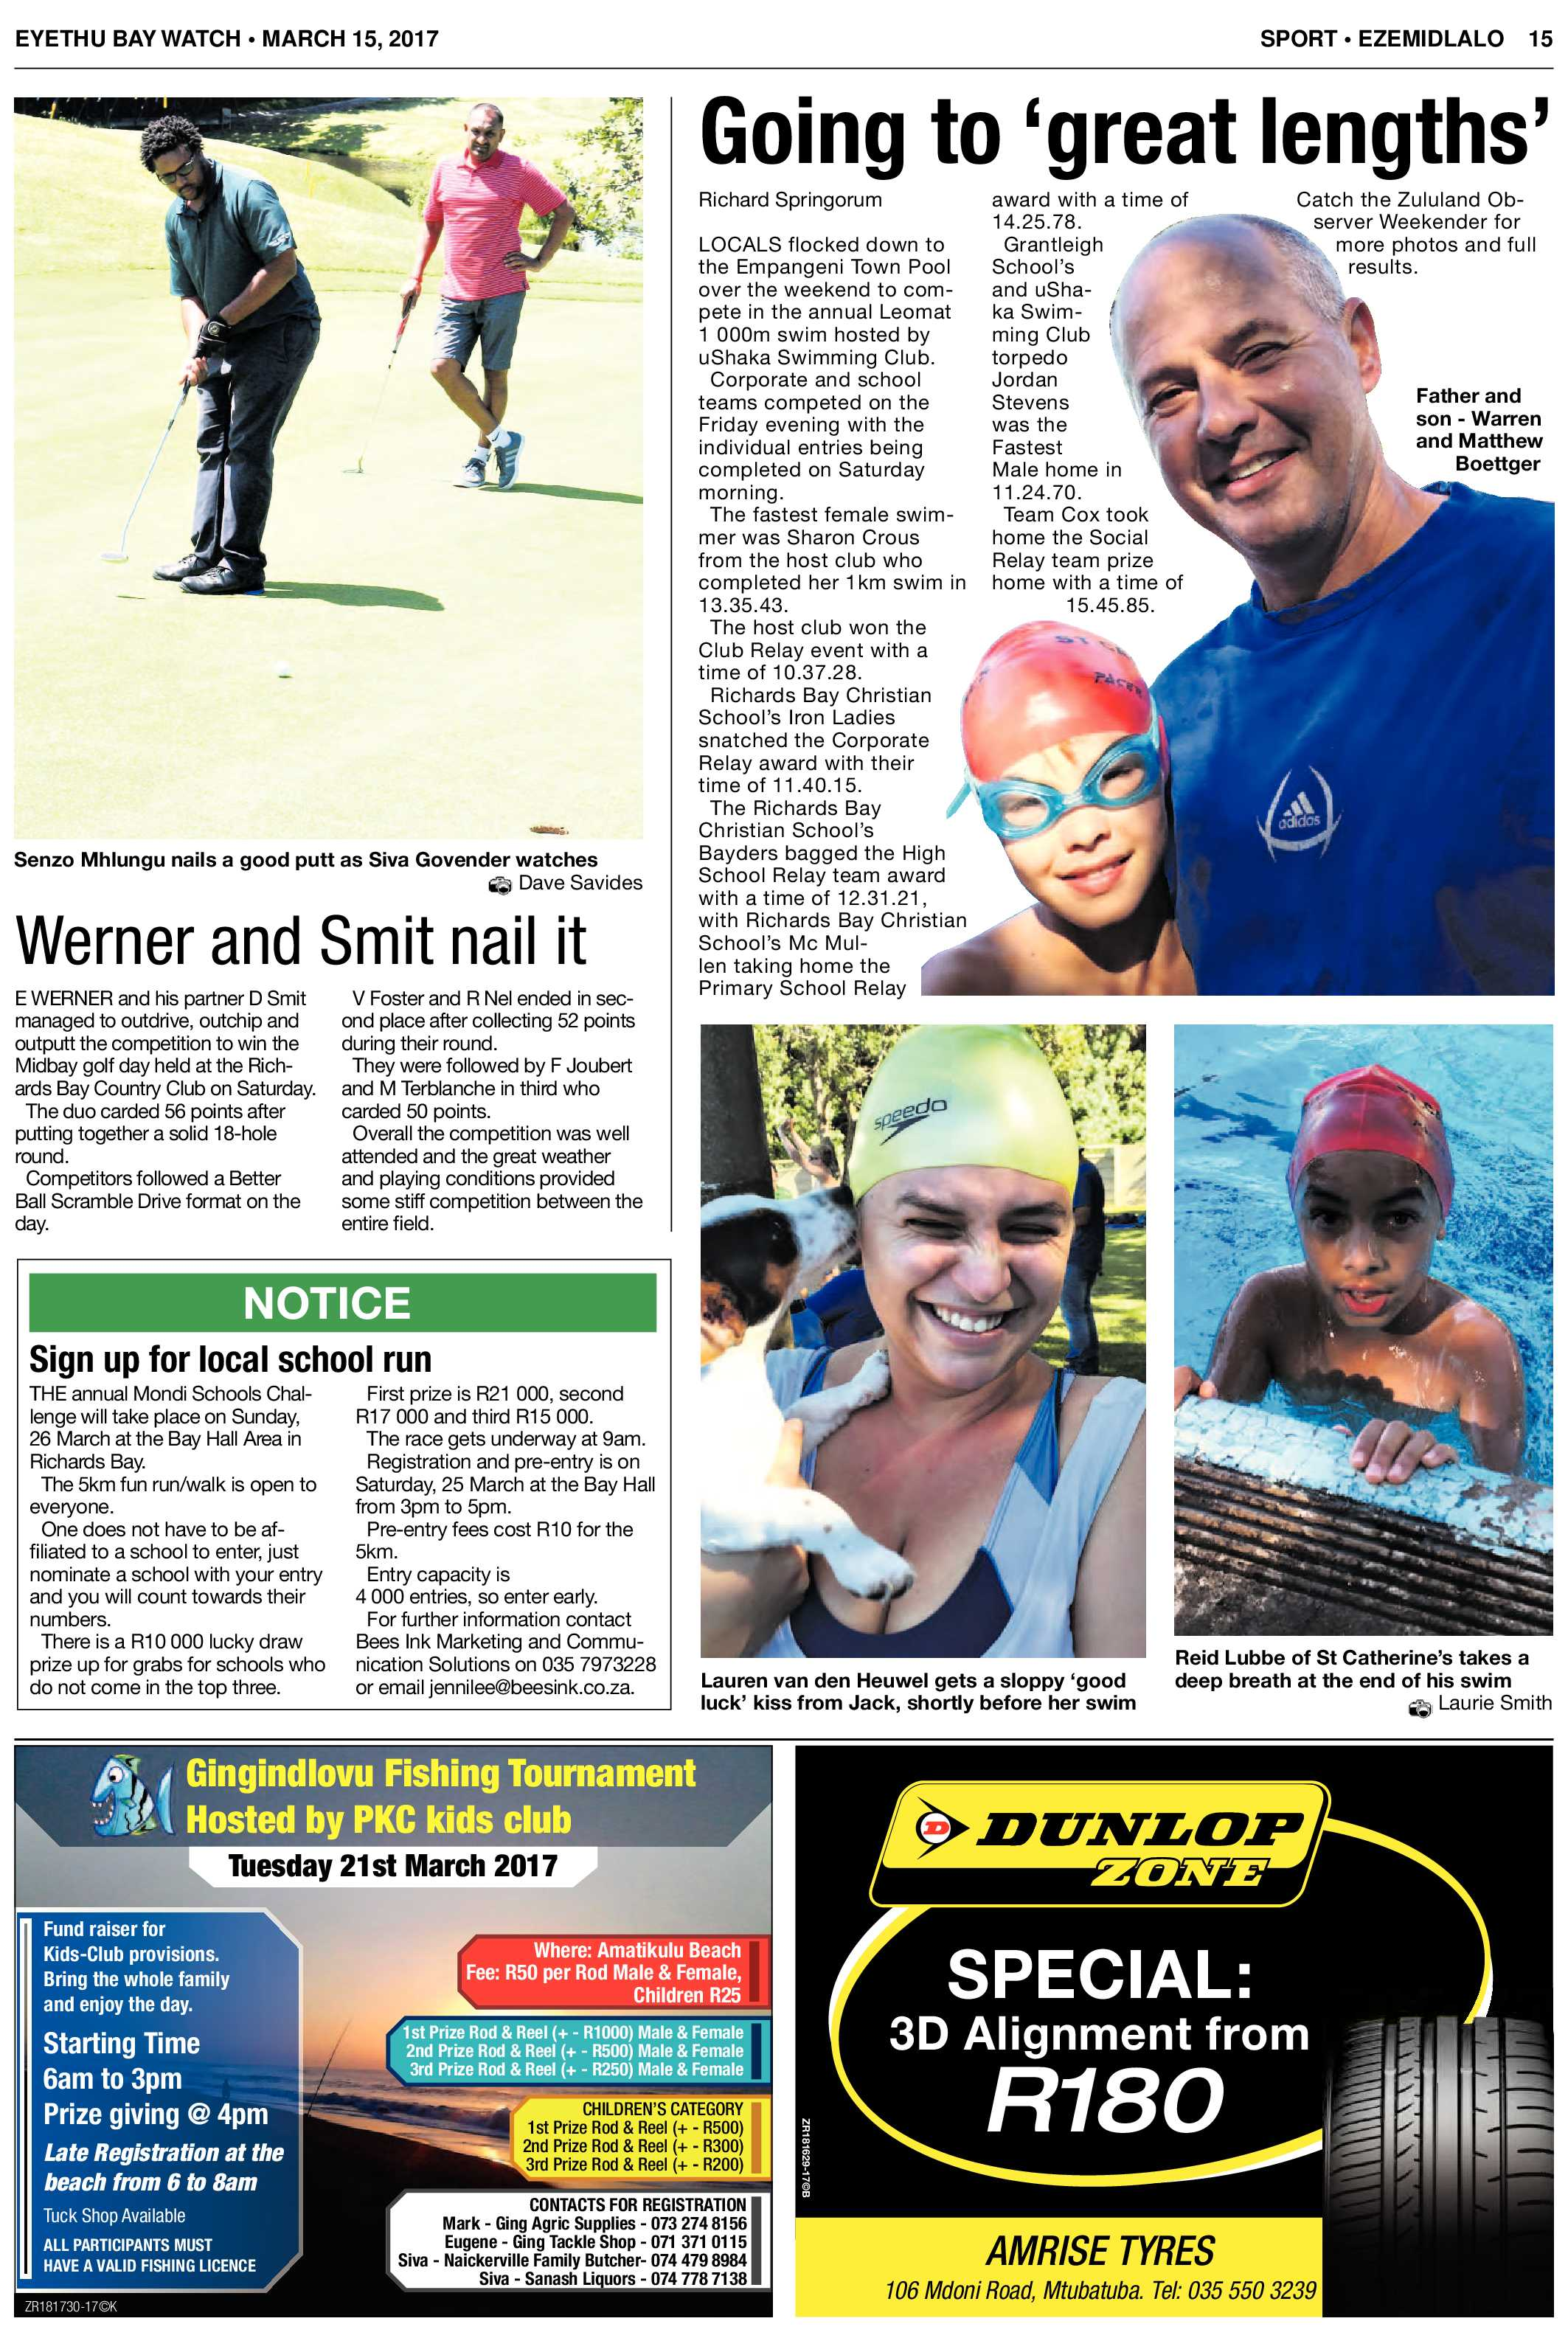 eyethu-baywatch-15-march-epapers-page-15